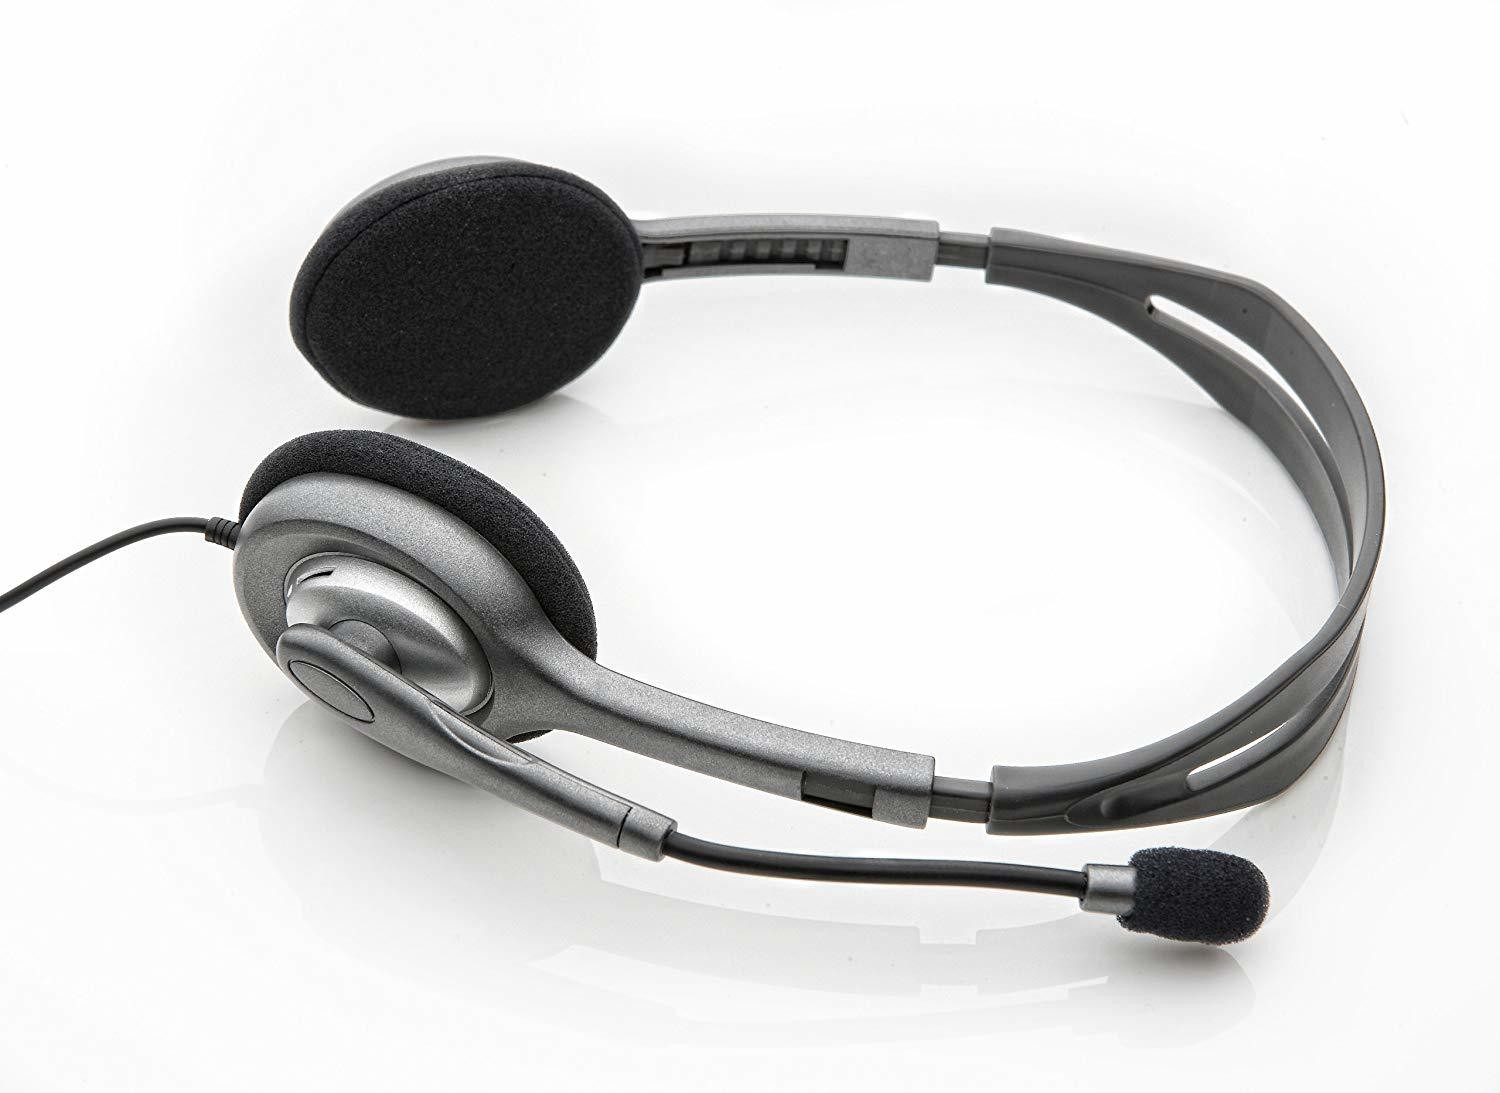 Logitech H110 Stereo Headset With Mic, Rs 400